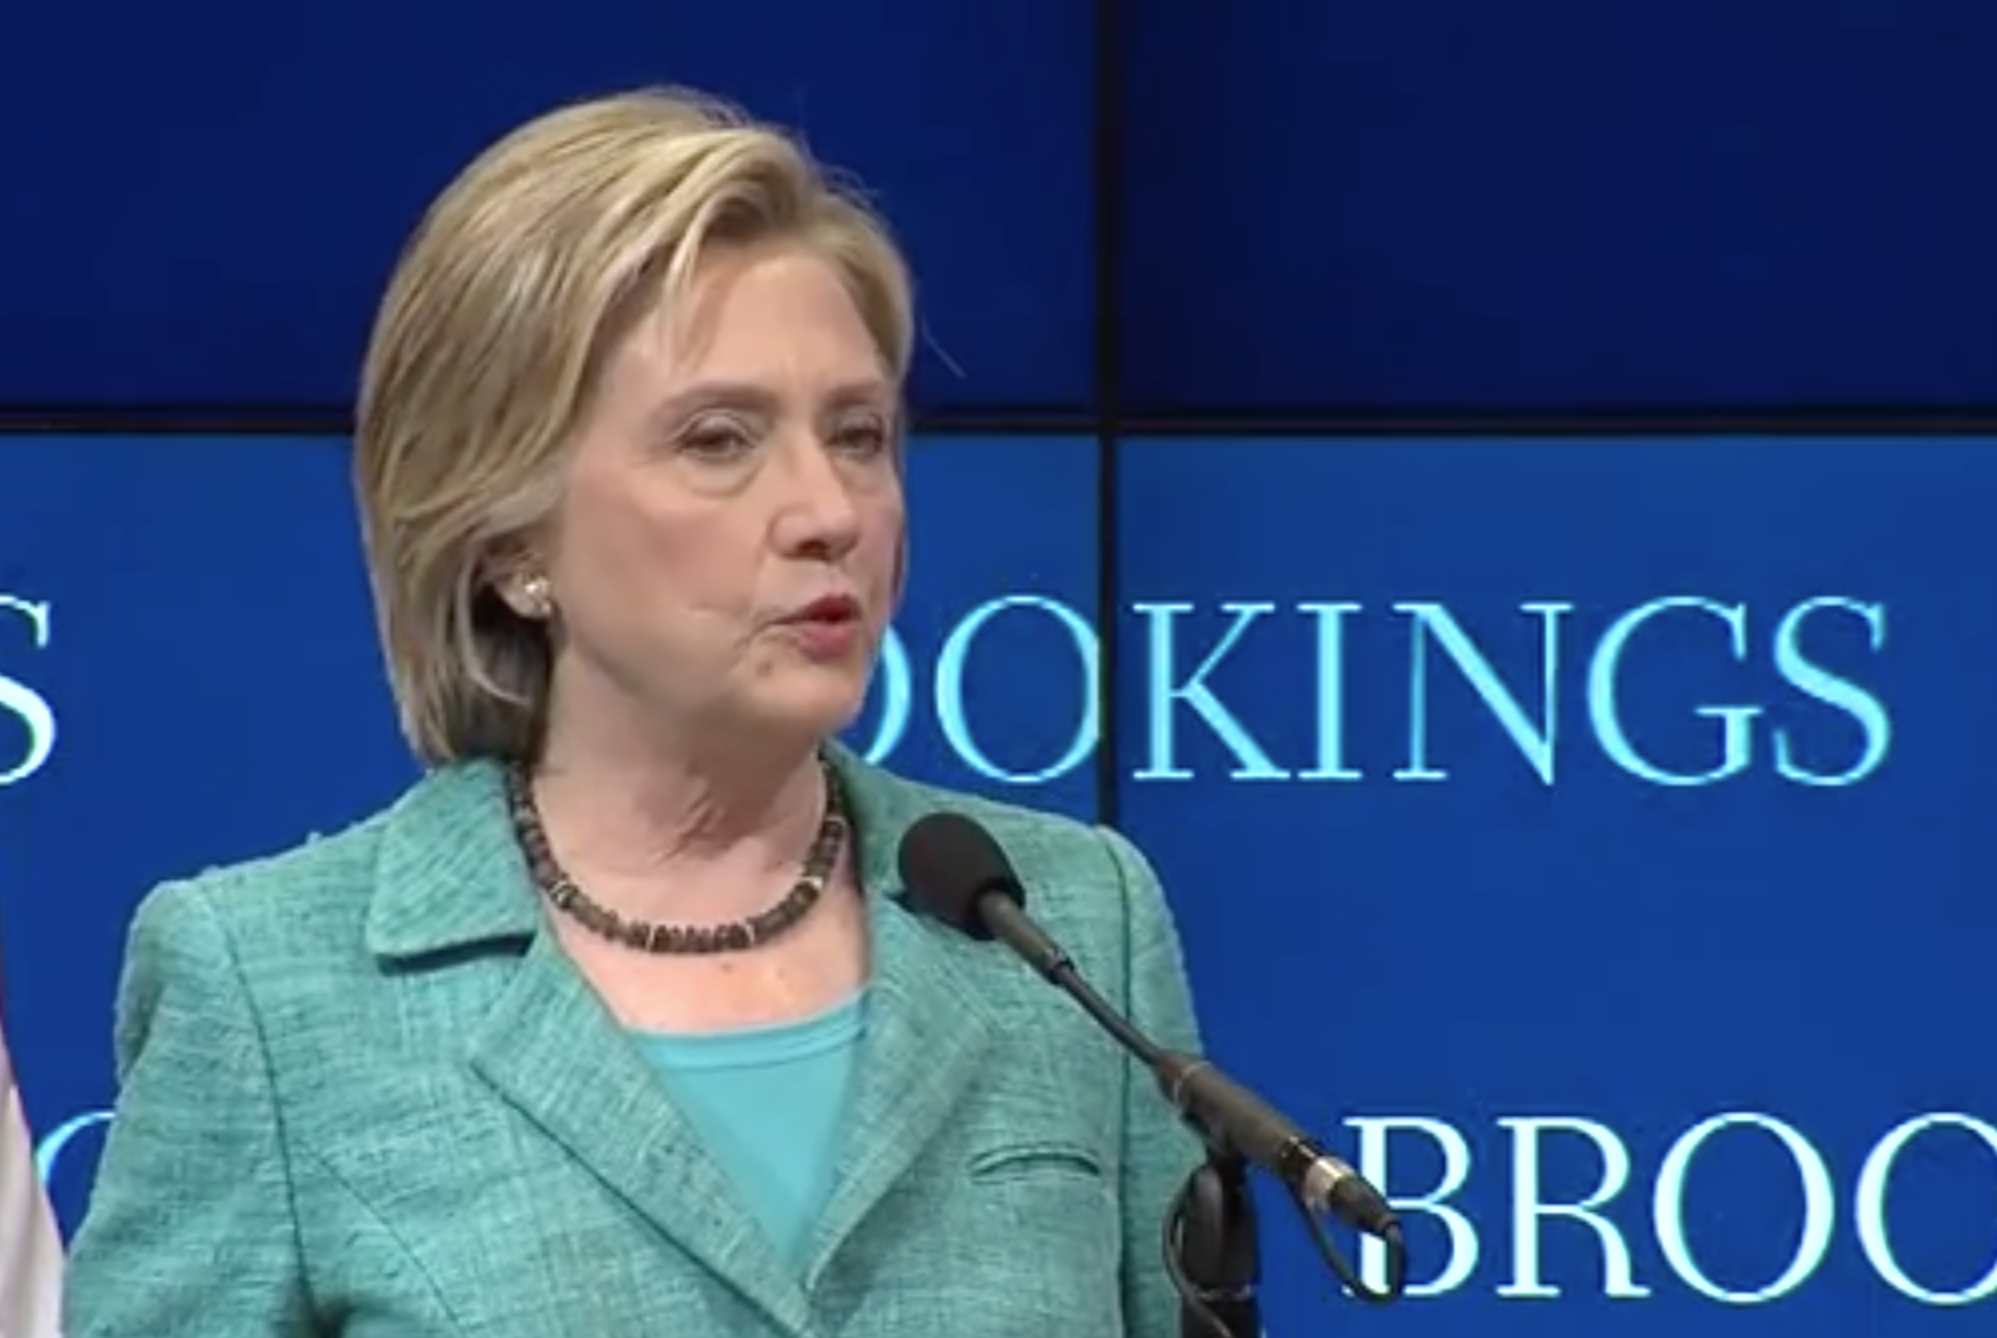 Former Secretary of State Hilary Clinton speaking on Sept. 9, 2015 at the Brookings Institution.